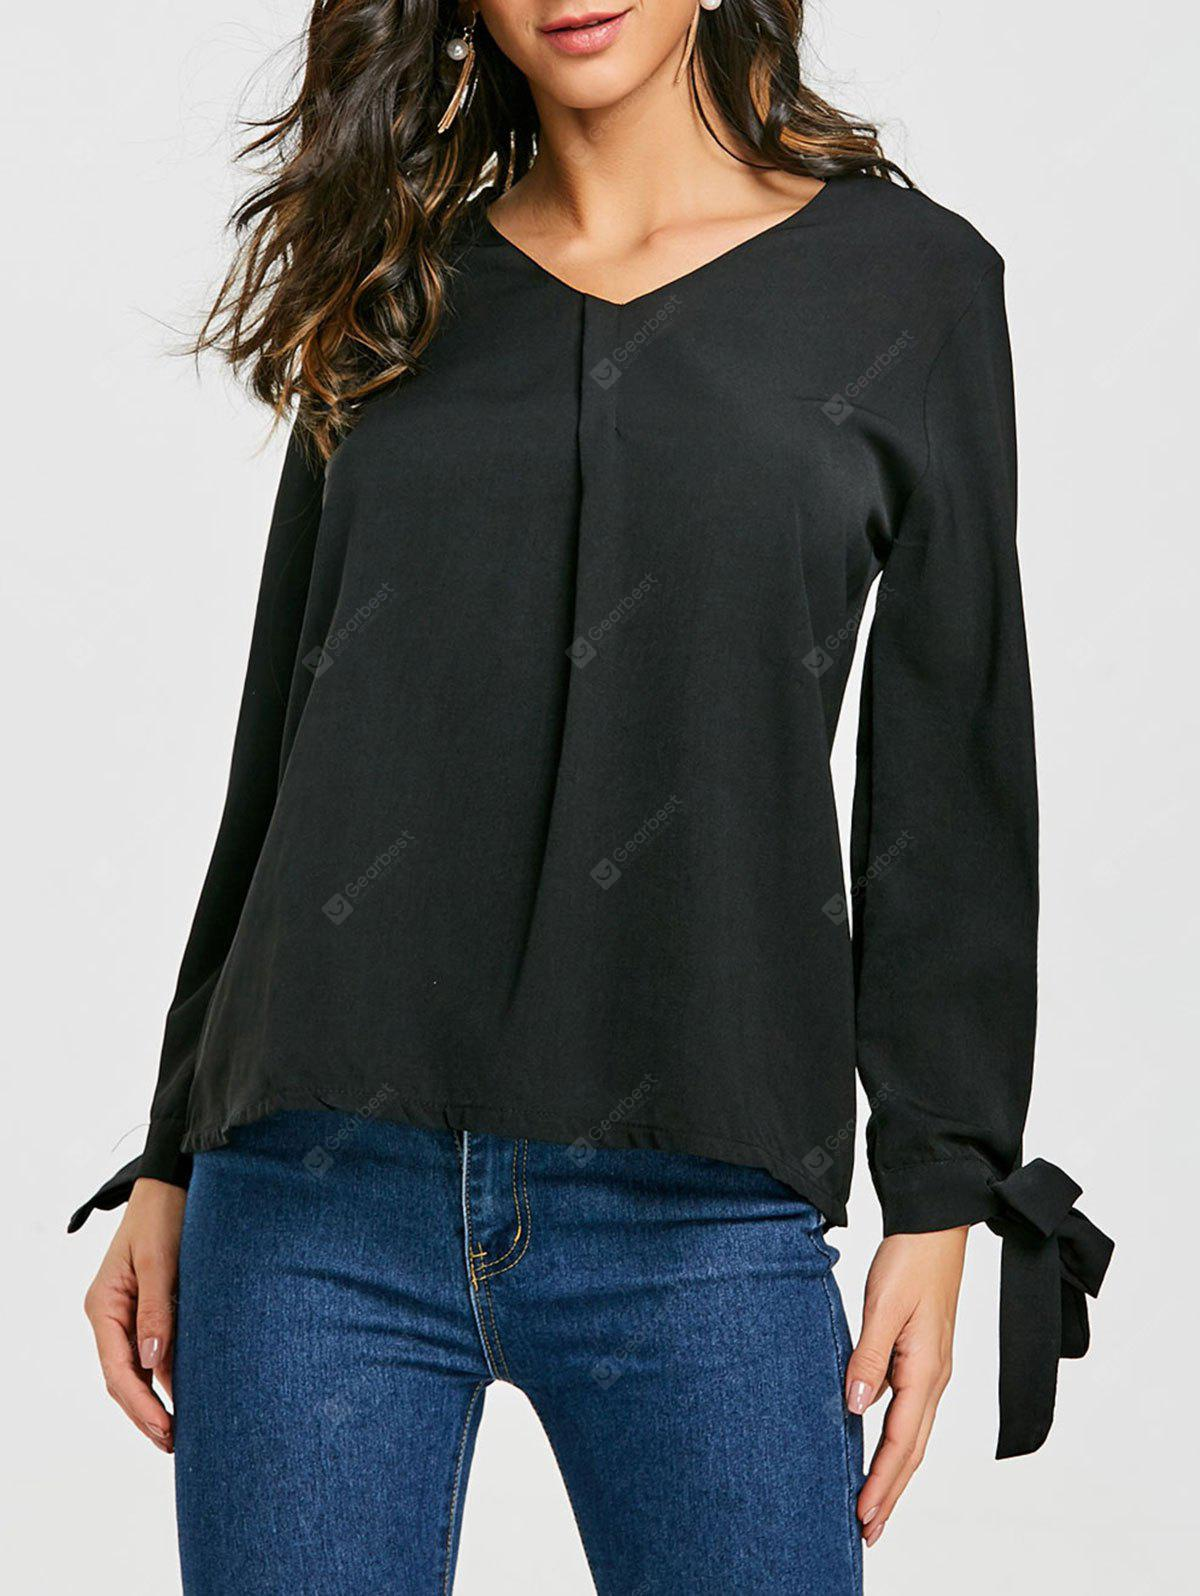 Chiffon Blouse with Bow Tie Cuff